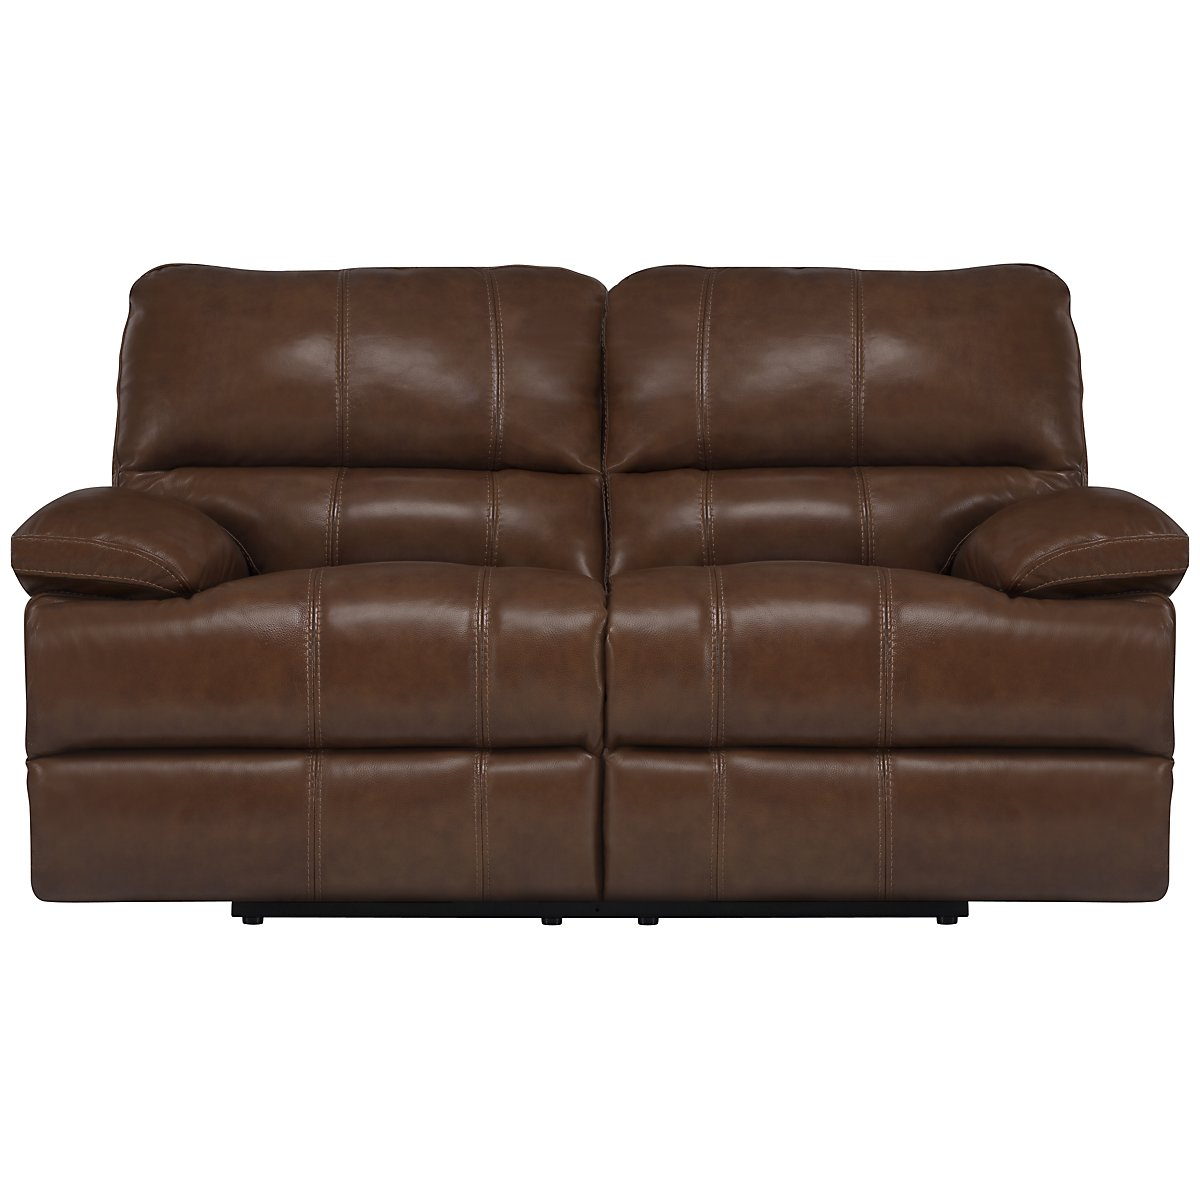 Alton2 Md Brown Leather & Vinyl Power Reclining Loveseat